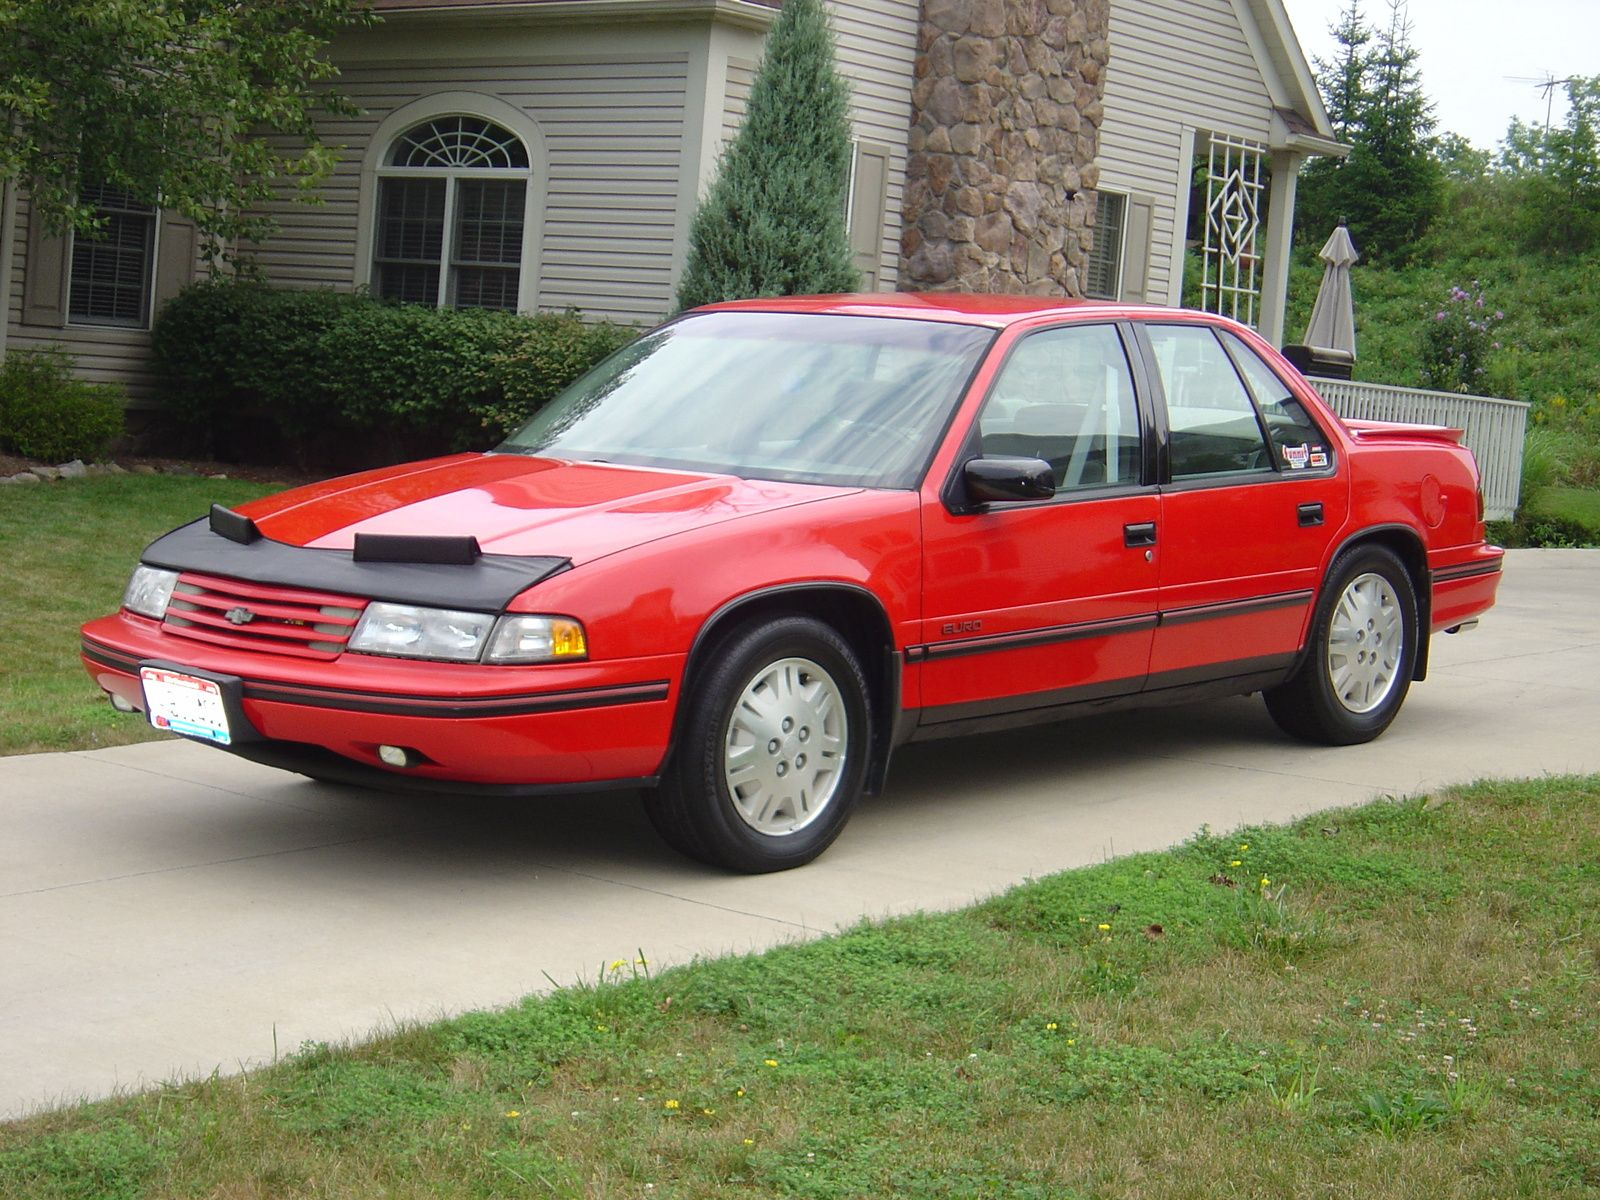 1992 Chevy Lumina 1992 Chevrolet Lumina 4 Dr Euro Sedan Picture Mine Had A Z34 Sticker On The Sides Chevrolet